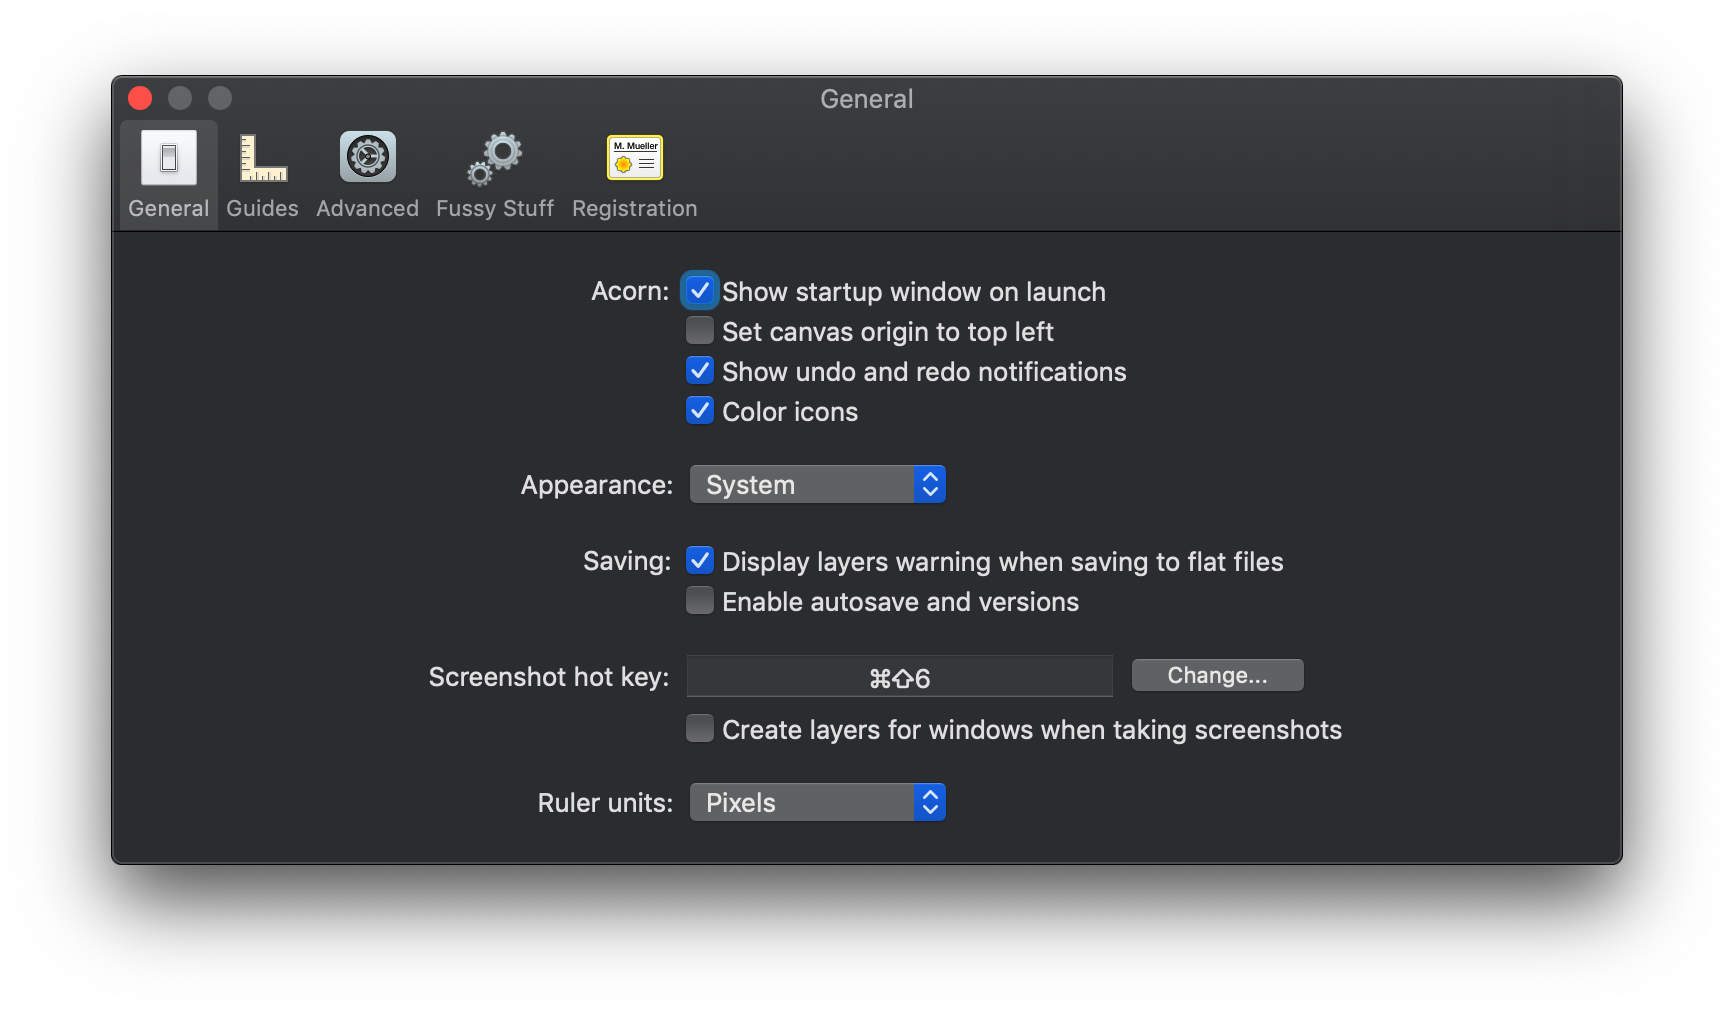 Acorn gives users the option to follow the system-set appearance or force Light or Dark Mode regardless of system settings.